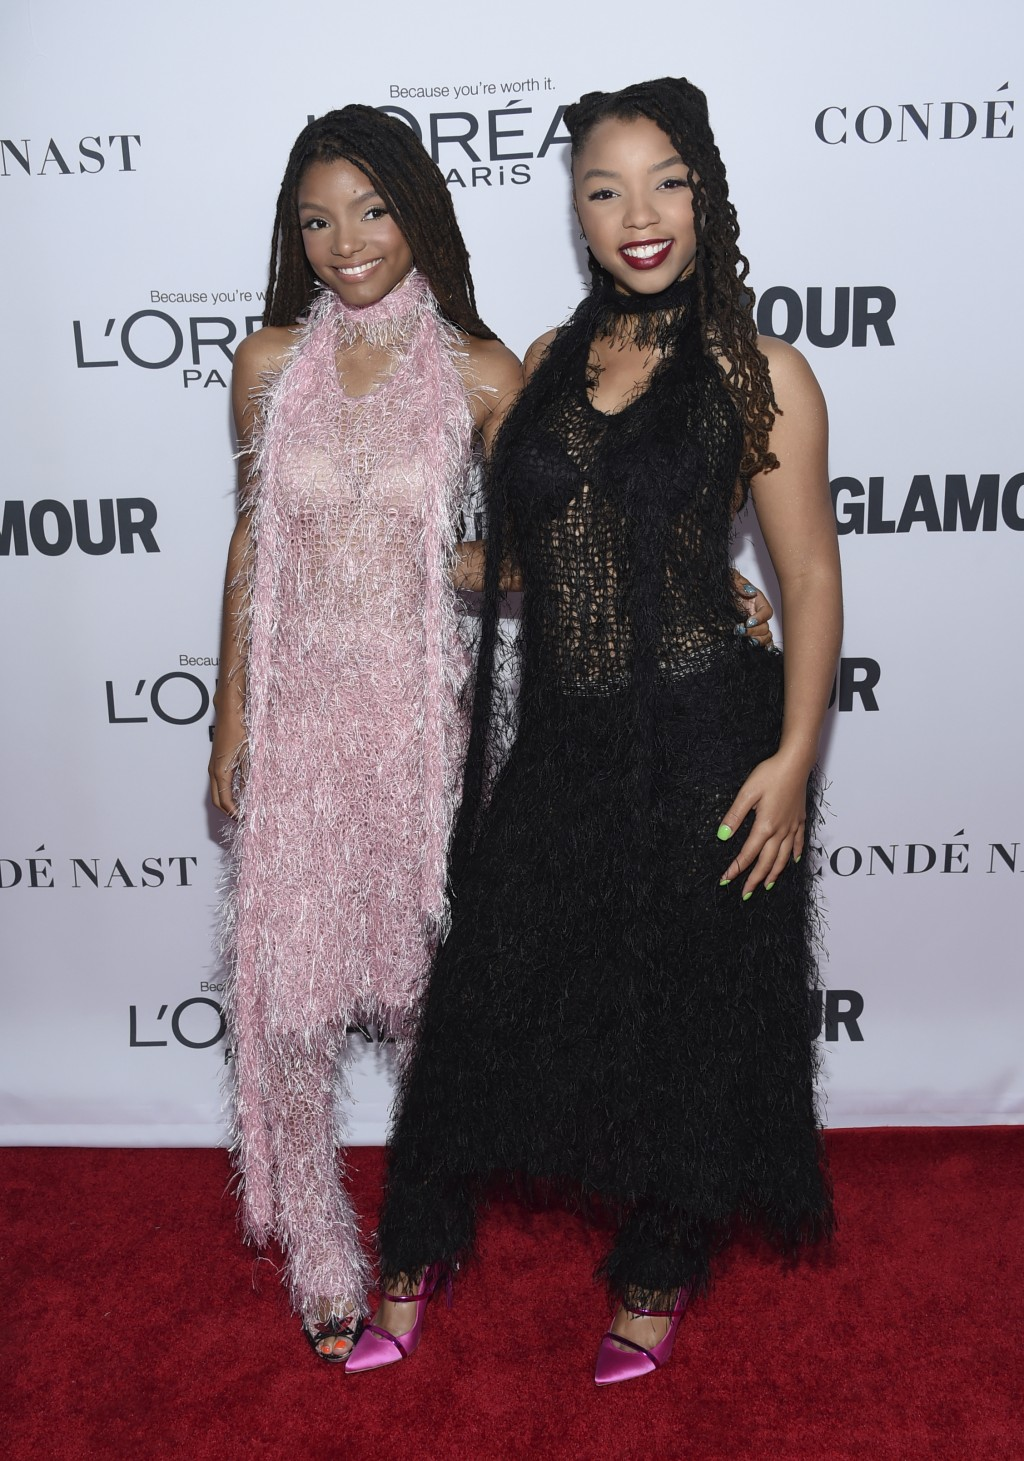 FILE - In this Nov. 13, 2017 file photo, Halle Bailey, left, and Chloe Bailey of Chloe x Halle attend the 2017 Glamour Women of the Year Awards in New